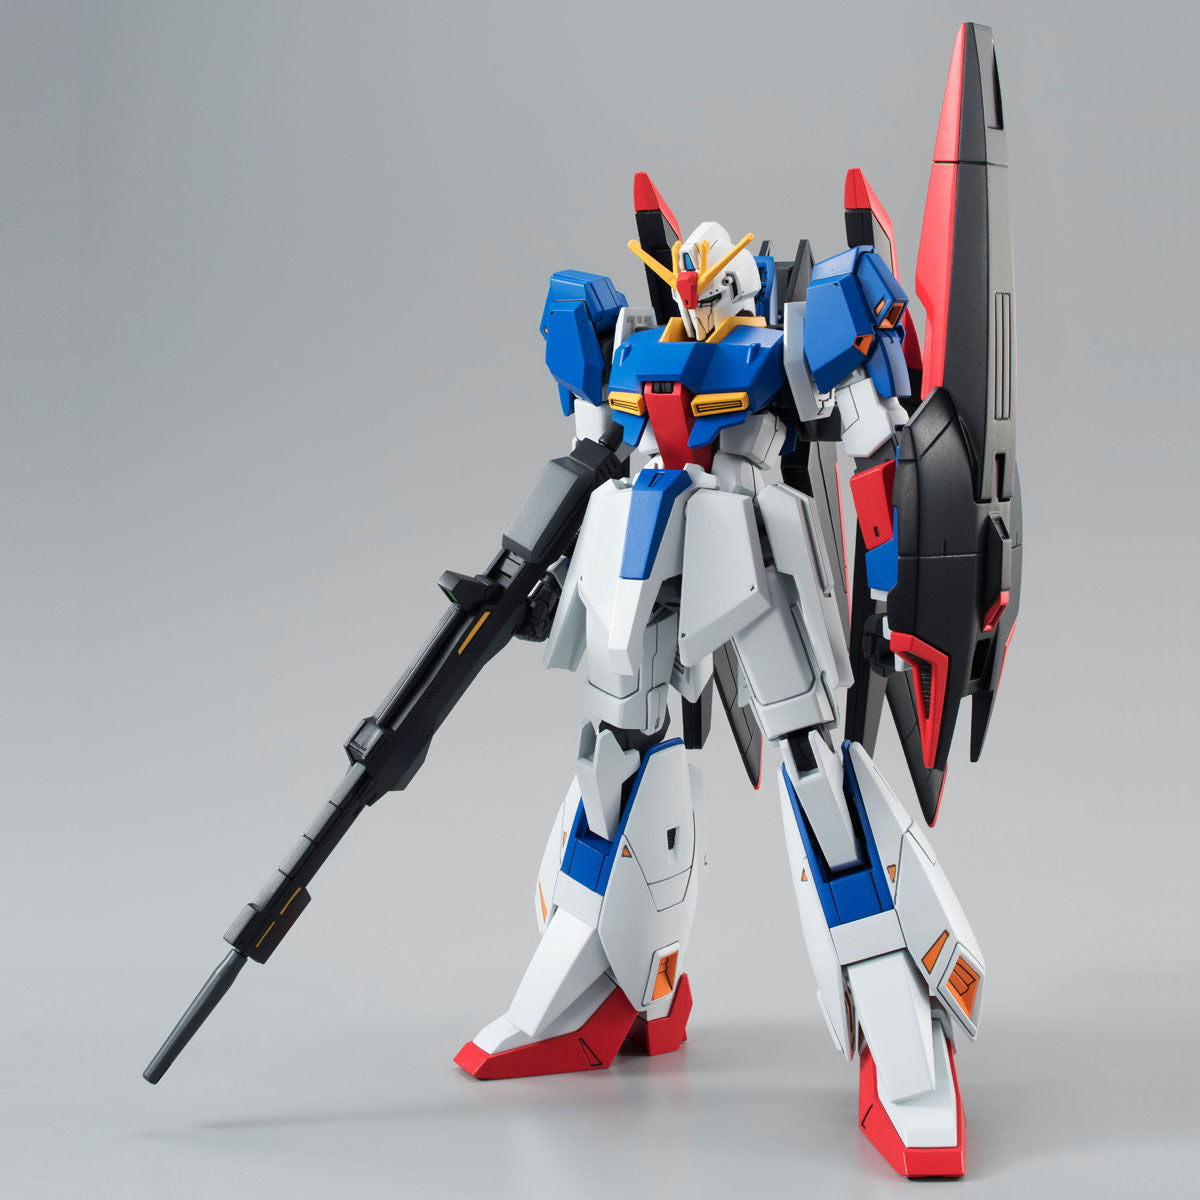 P-BANDAI: HGUC 1/144 MSZ-006 ZETA GUNDAM WAVE SHOOTER EQUIPMENT TYPE [OUT OF STOCK]